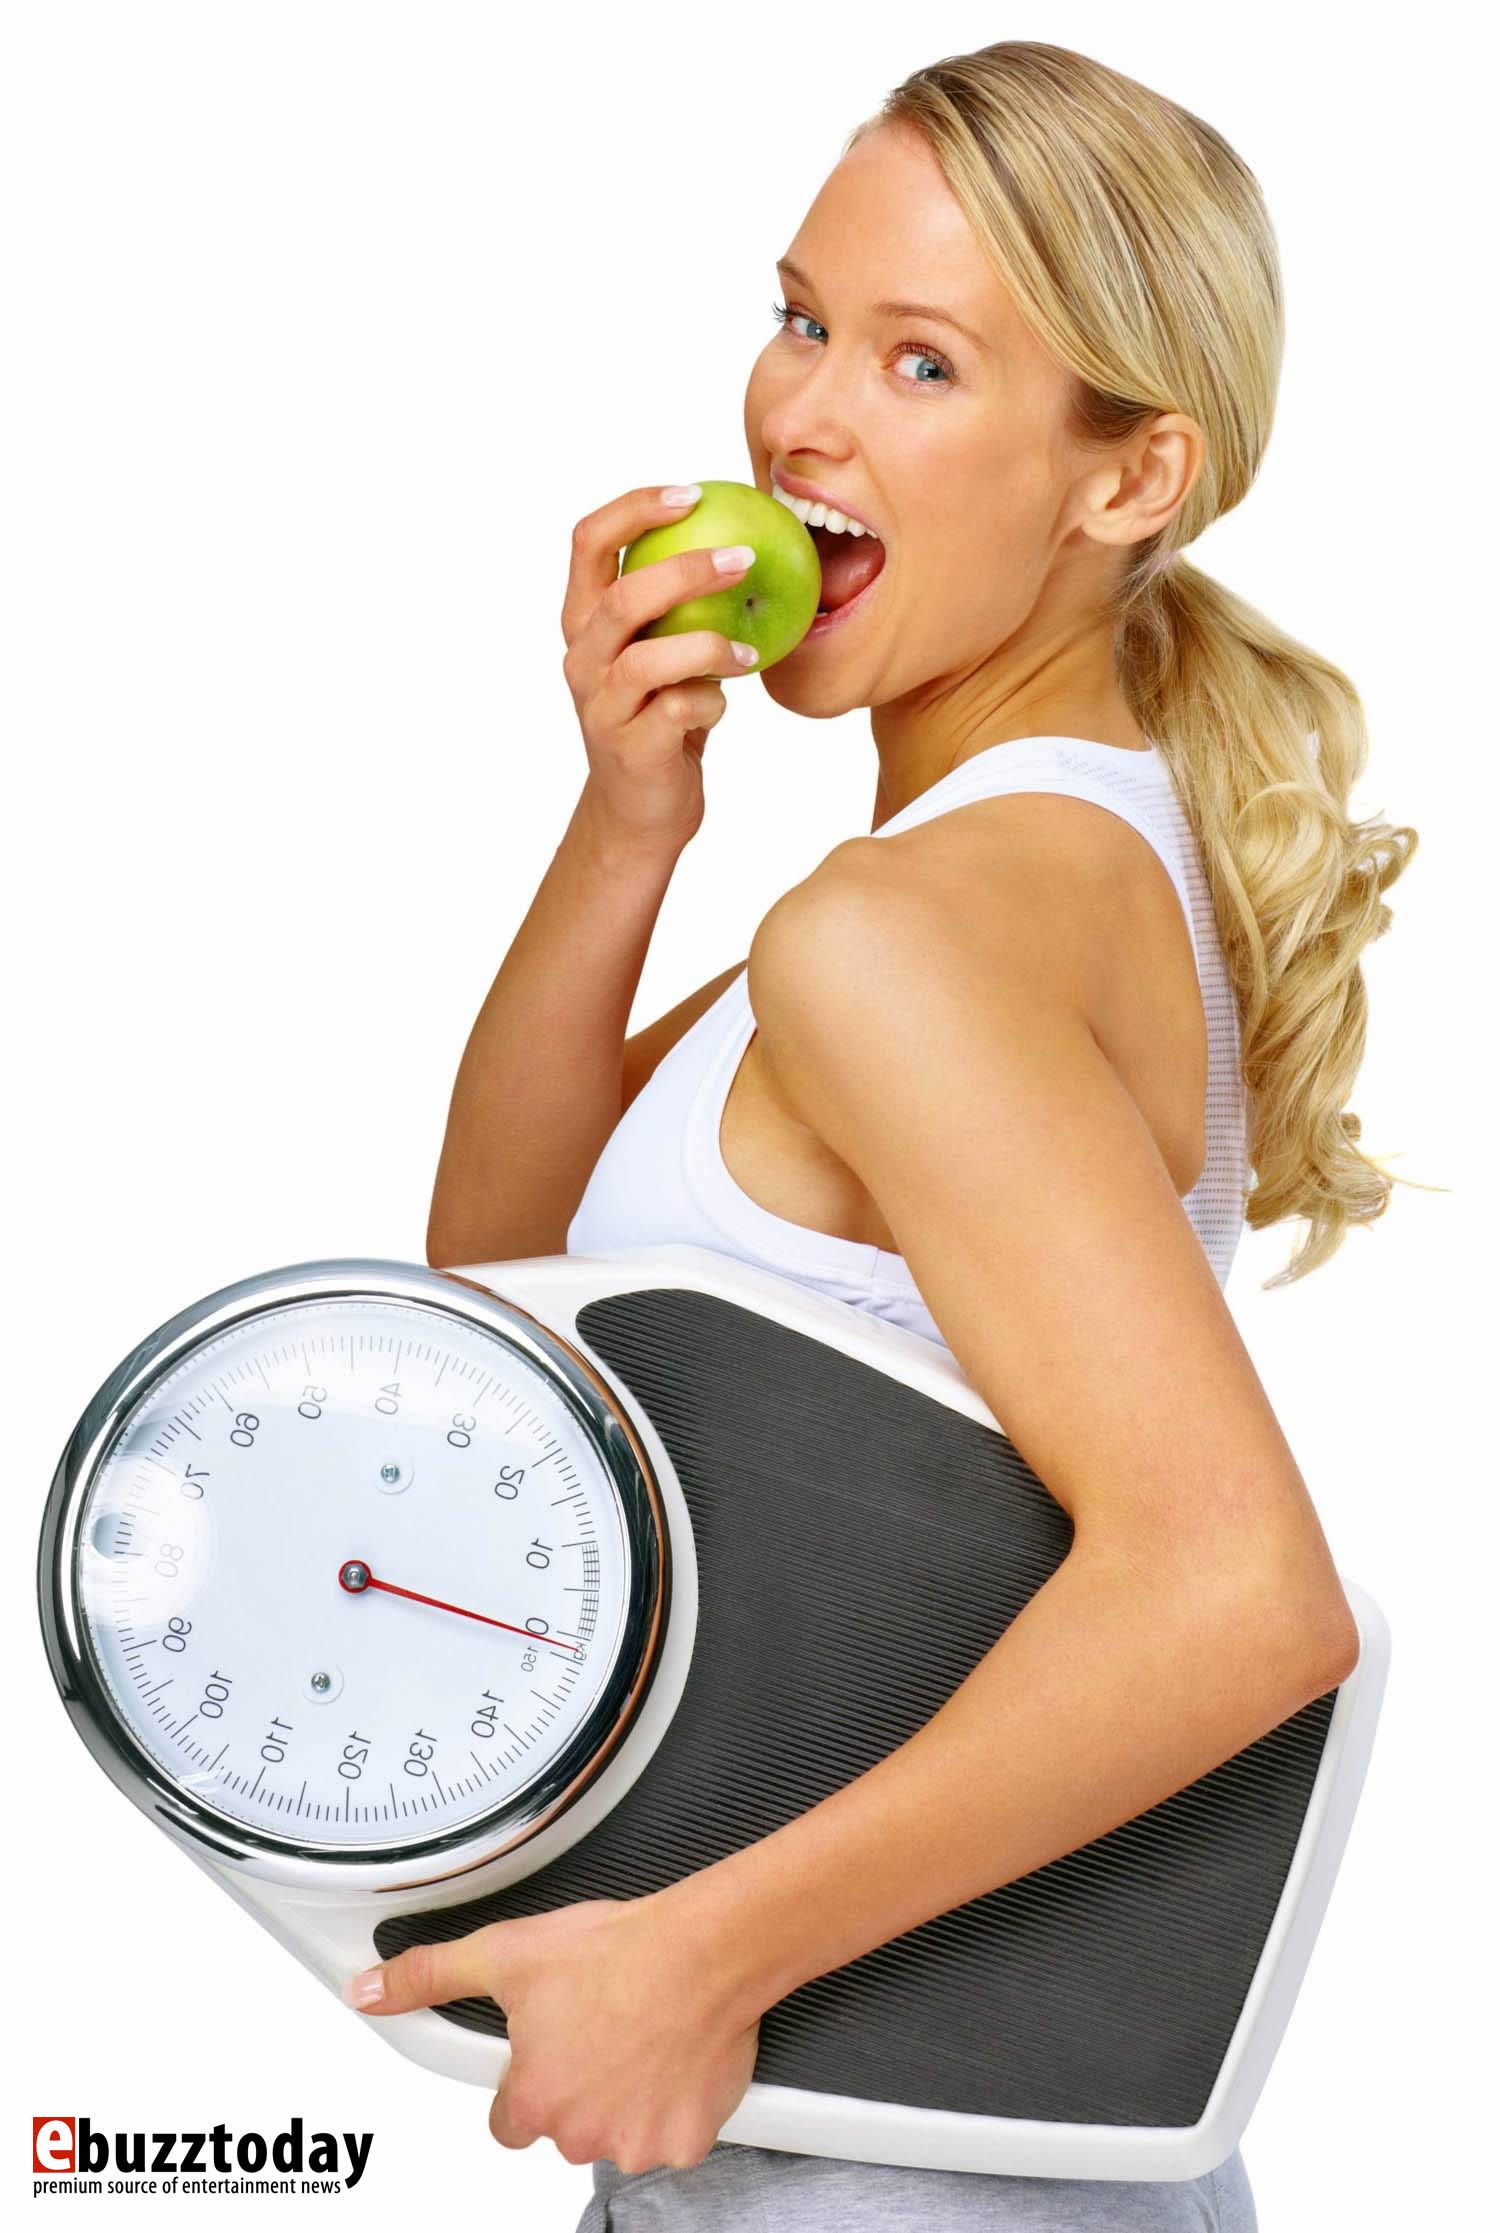 From green amberen weight loss coupons4indy suggestions from